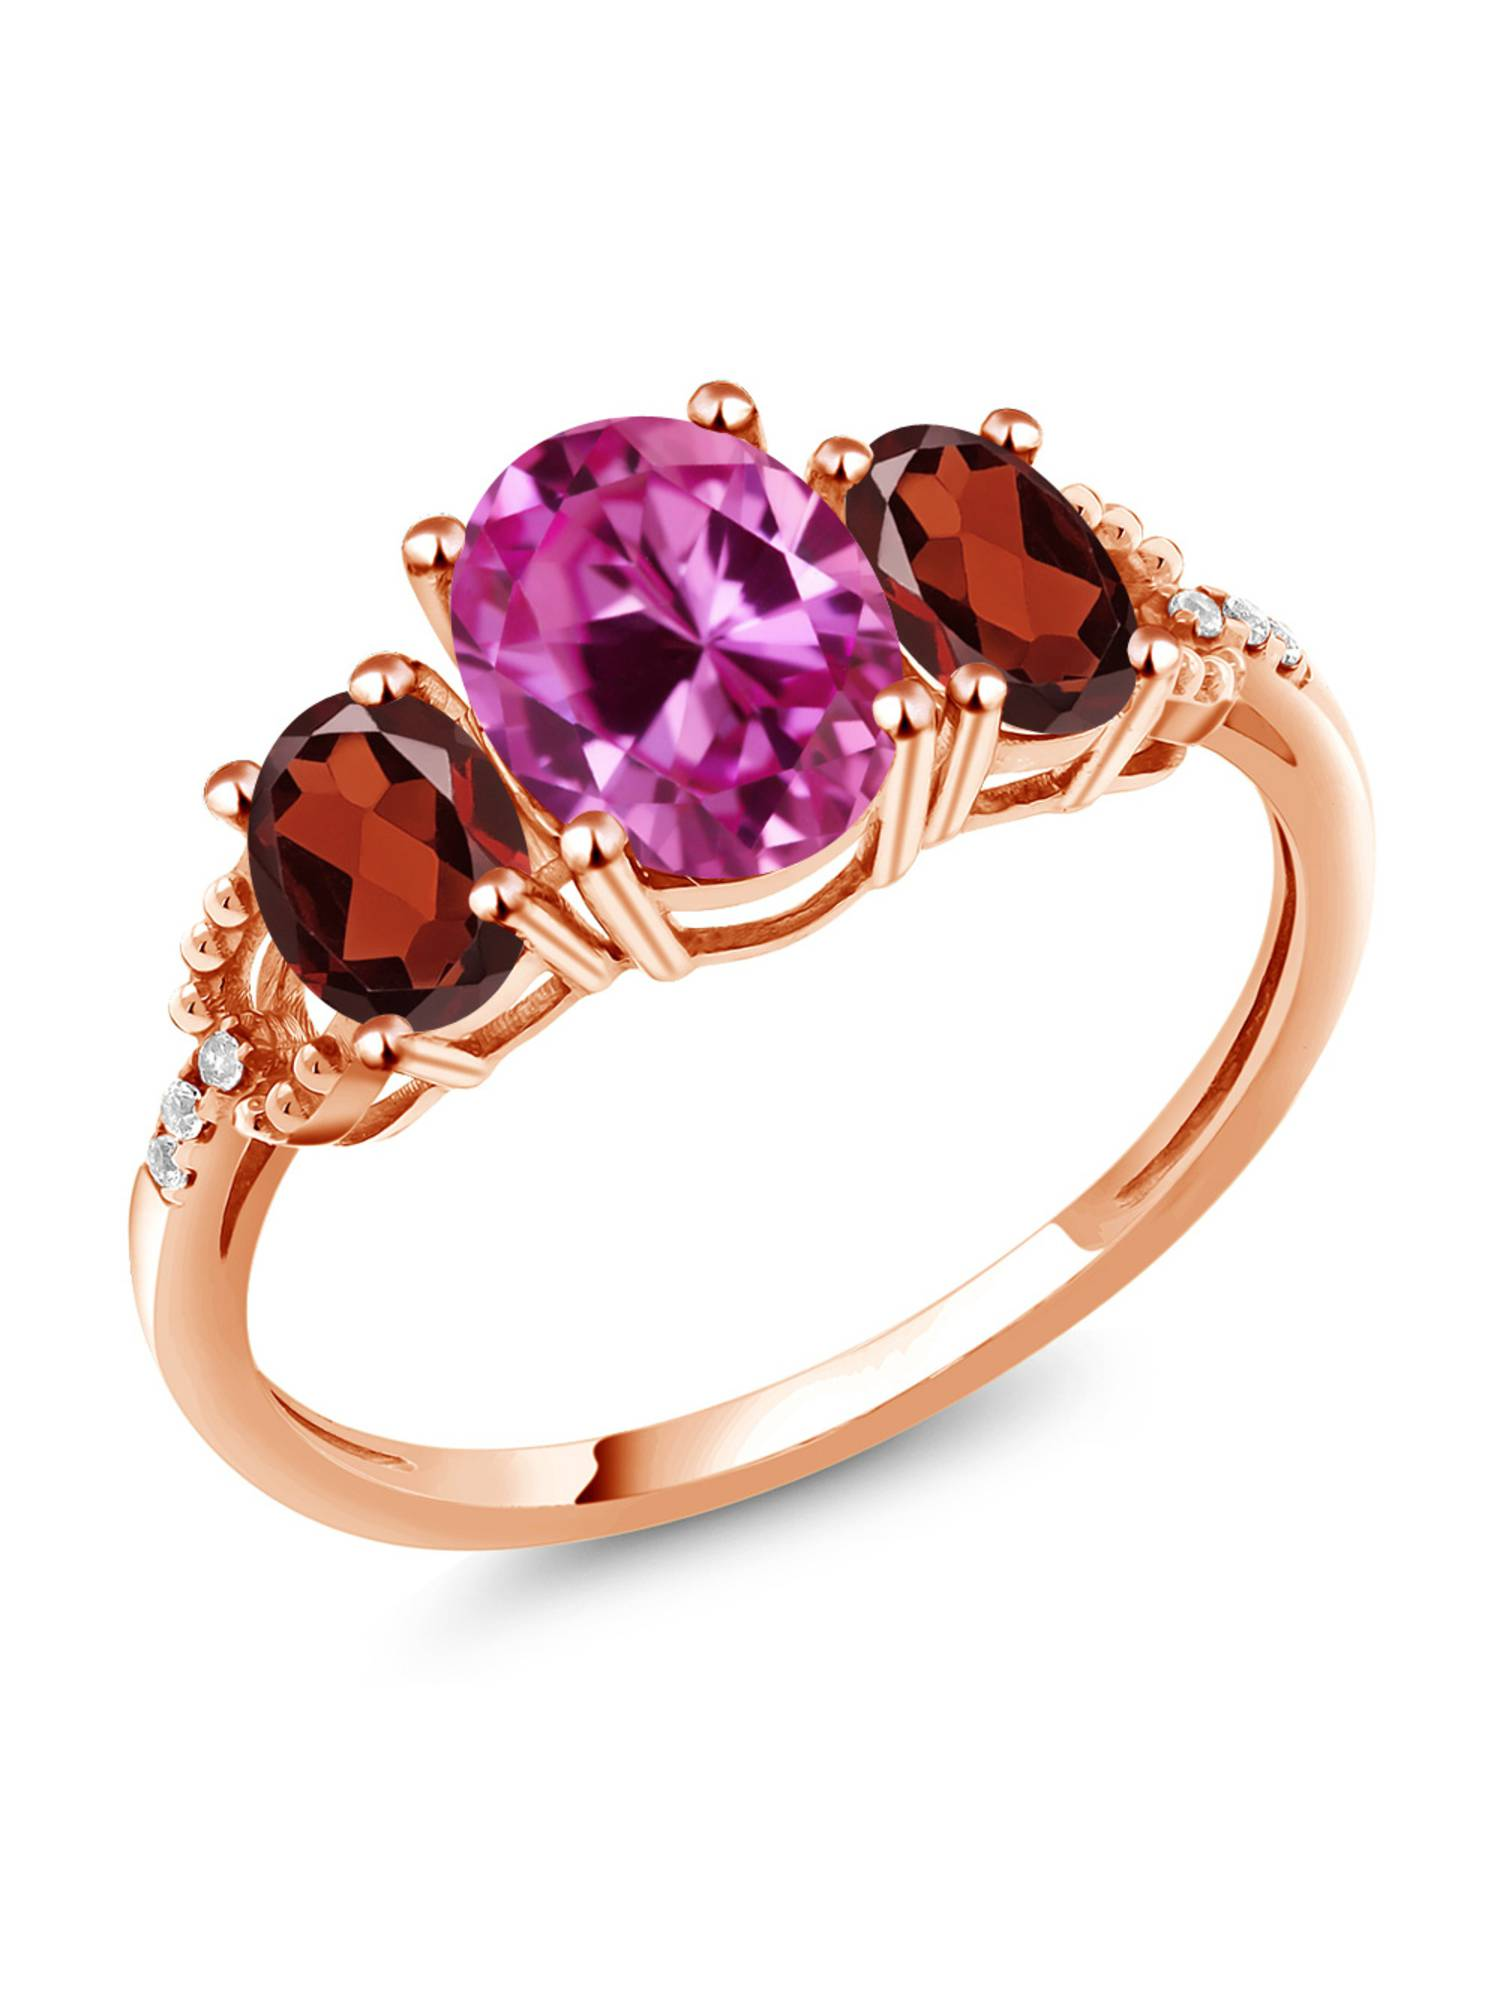 2.69 Ct Oval Pink Created Sapphire Red Garnet 10K Rose Gold Diamond Accent Ring by